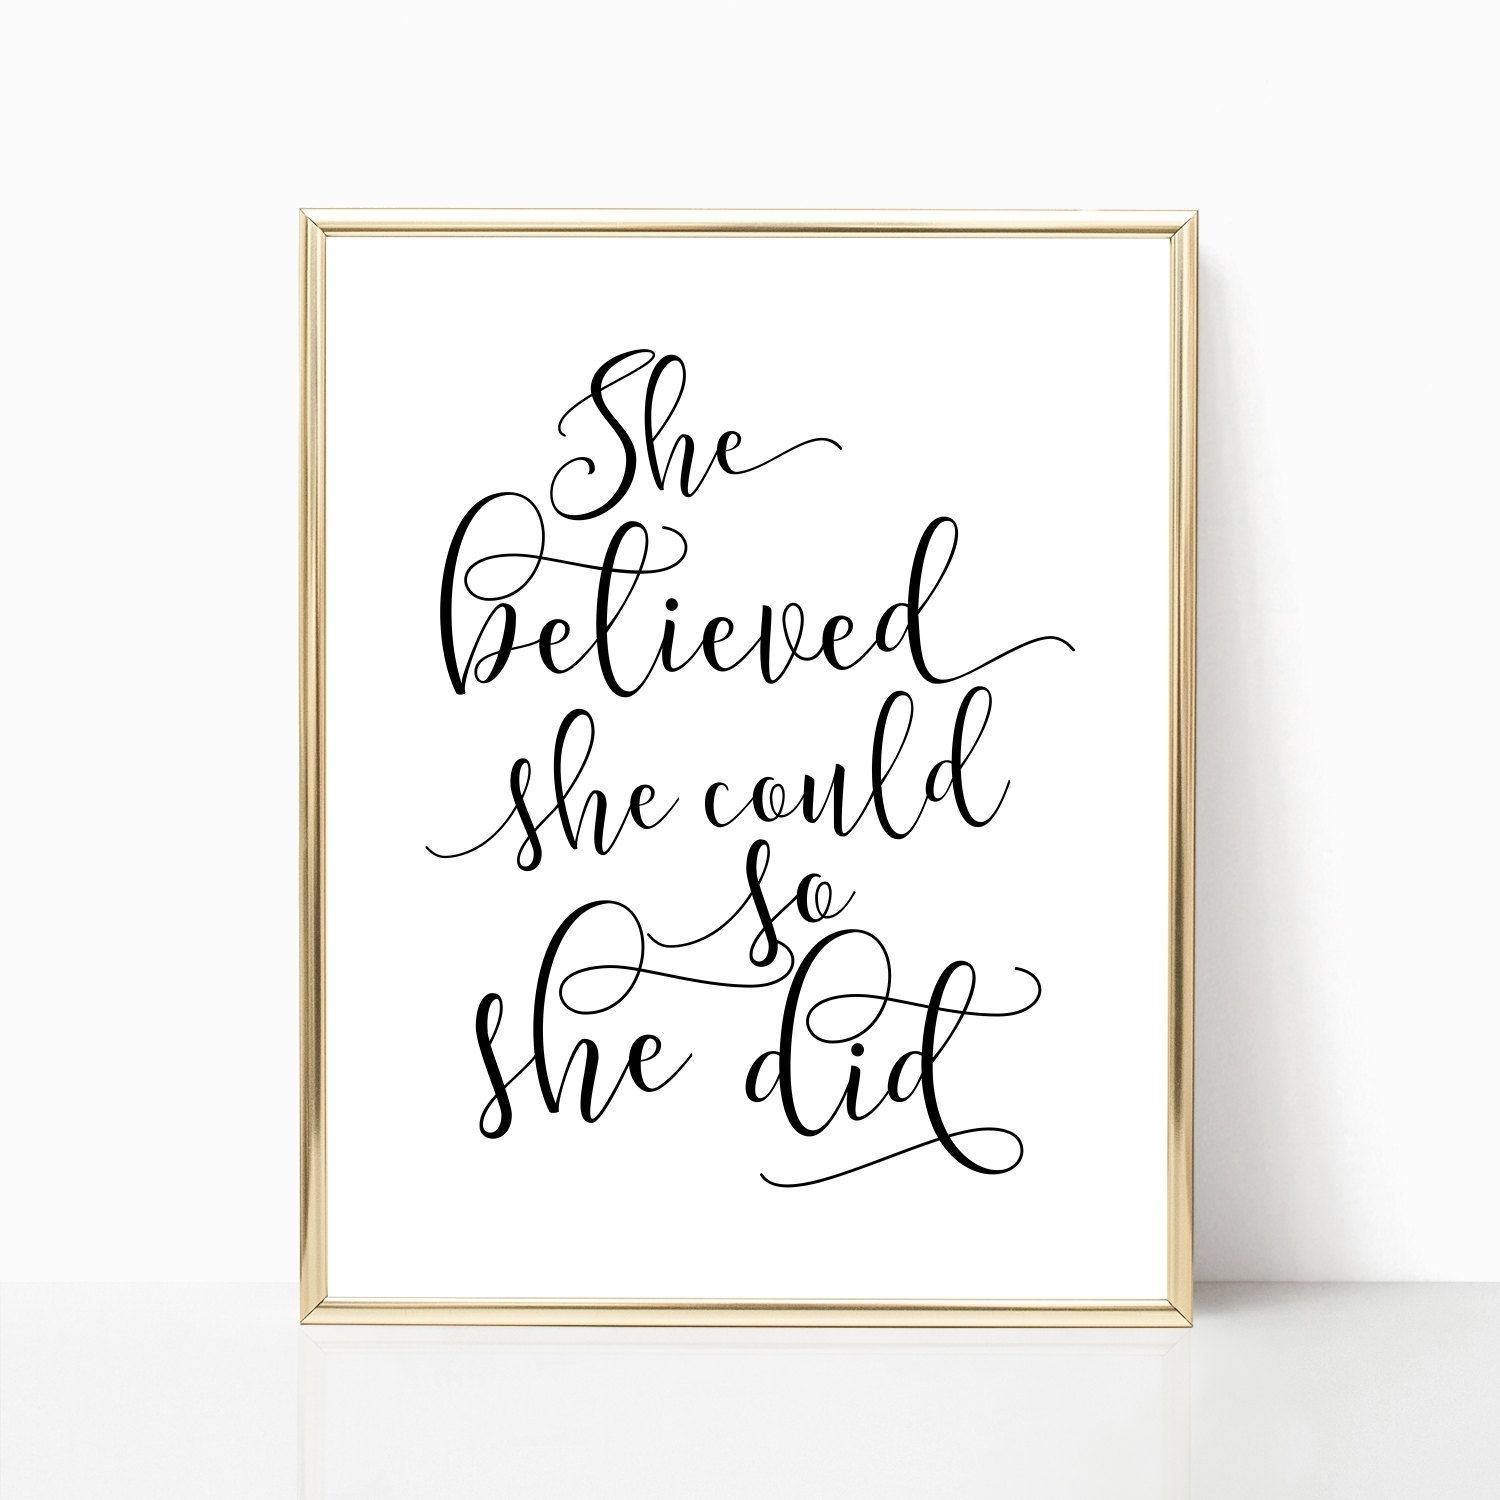 She Believed She Could So She Did Printable Art Girls Room Decor Regarding Newest She Believed She Could So She Did Wall Art (View 20 of 20)